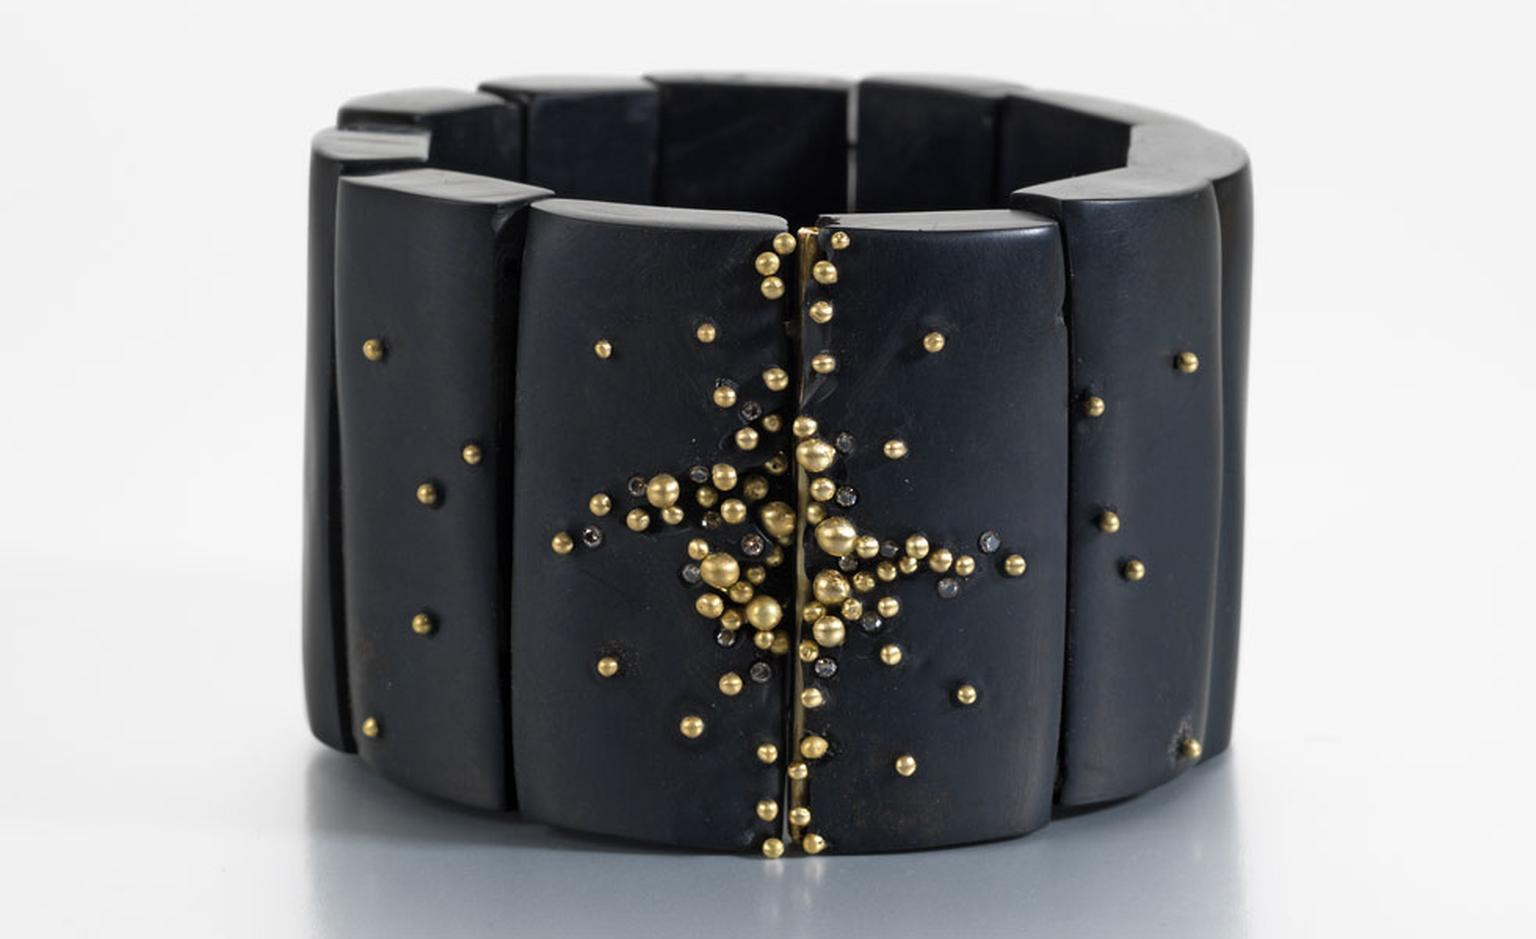 Whitby jet bracelet with gold granulation and champagne diamonds by the award-winning jeweller Jacqueline Cullen and inspired by volcanic eruptions and the flow of lava from crevices. £2,000